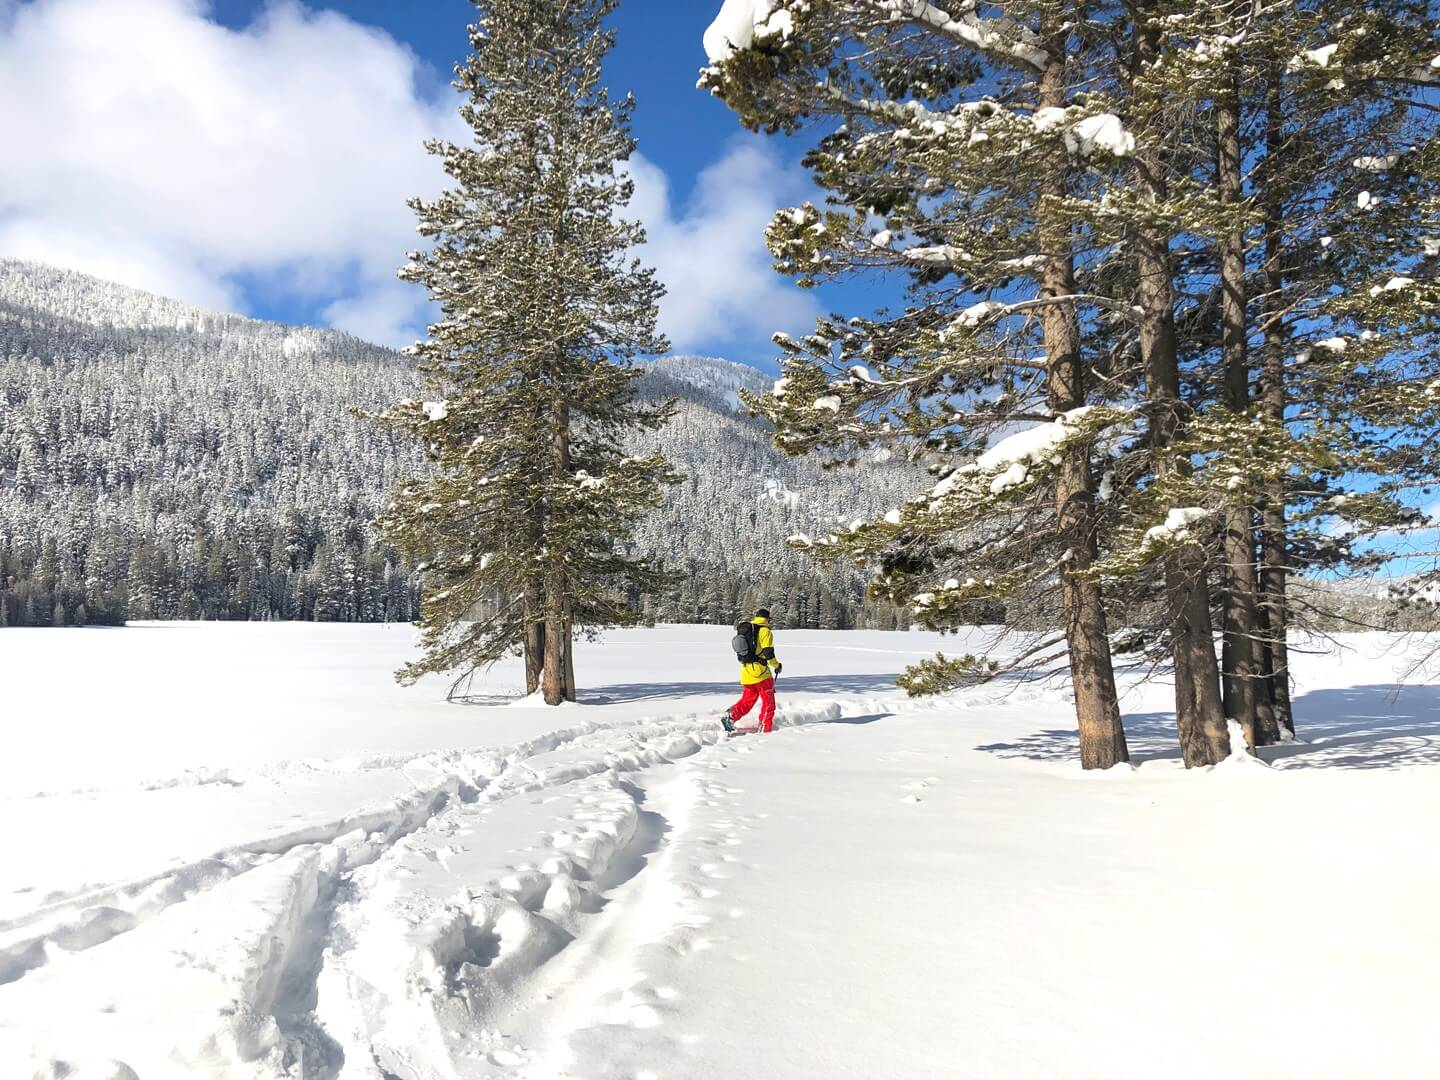 Sunny day cross county skiing in Lake Tahoe near Powder House